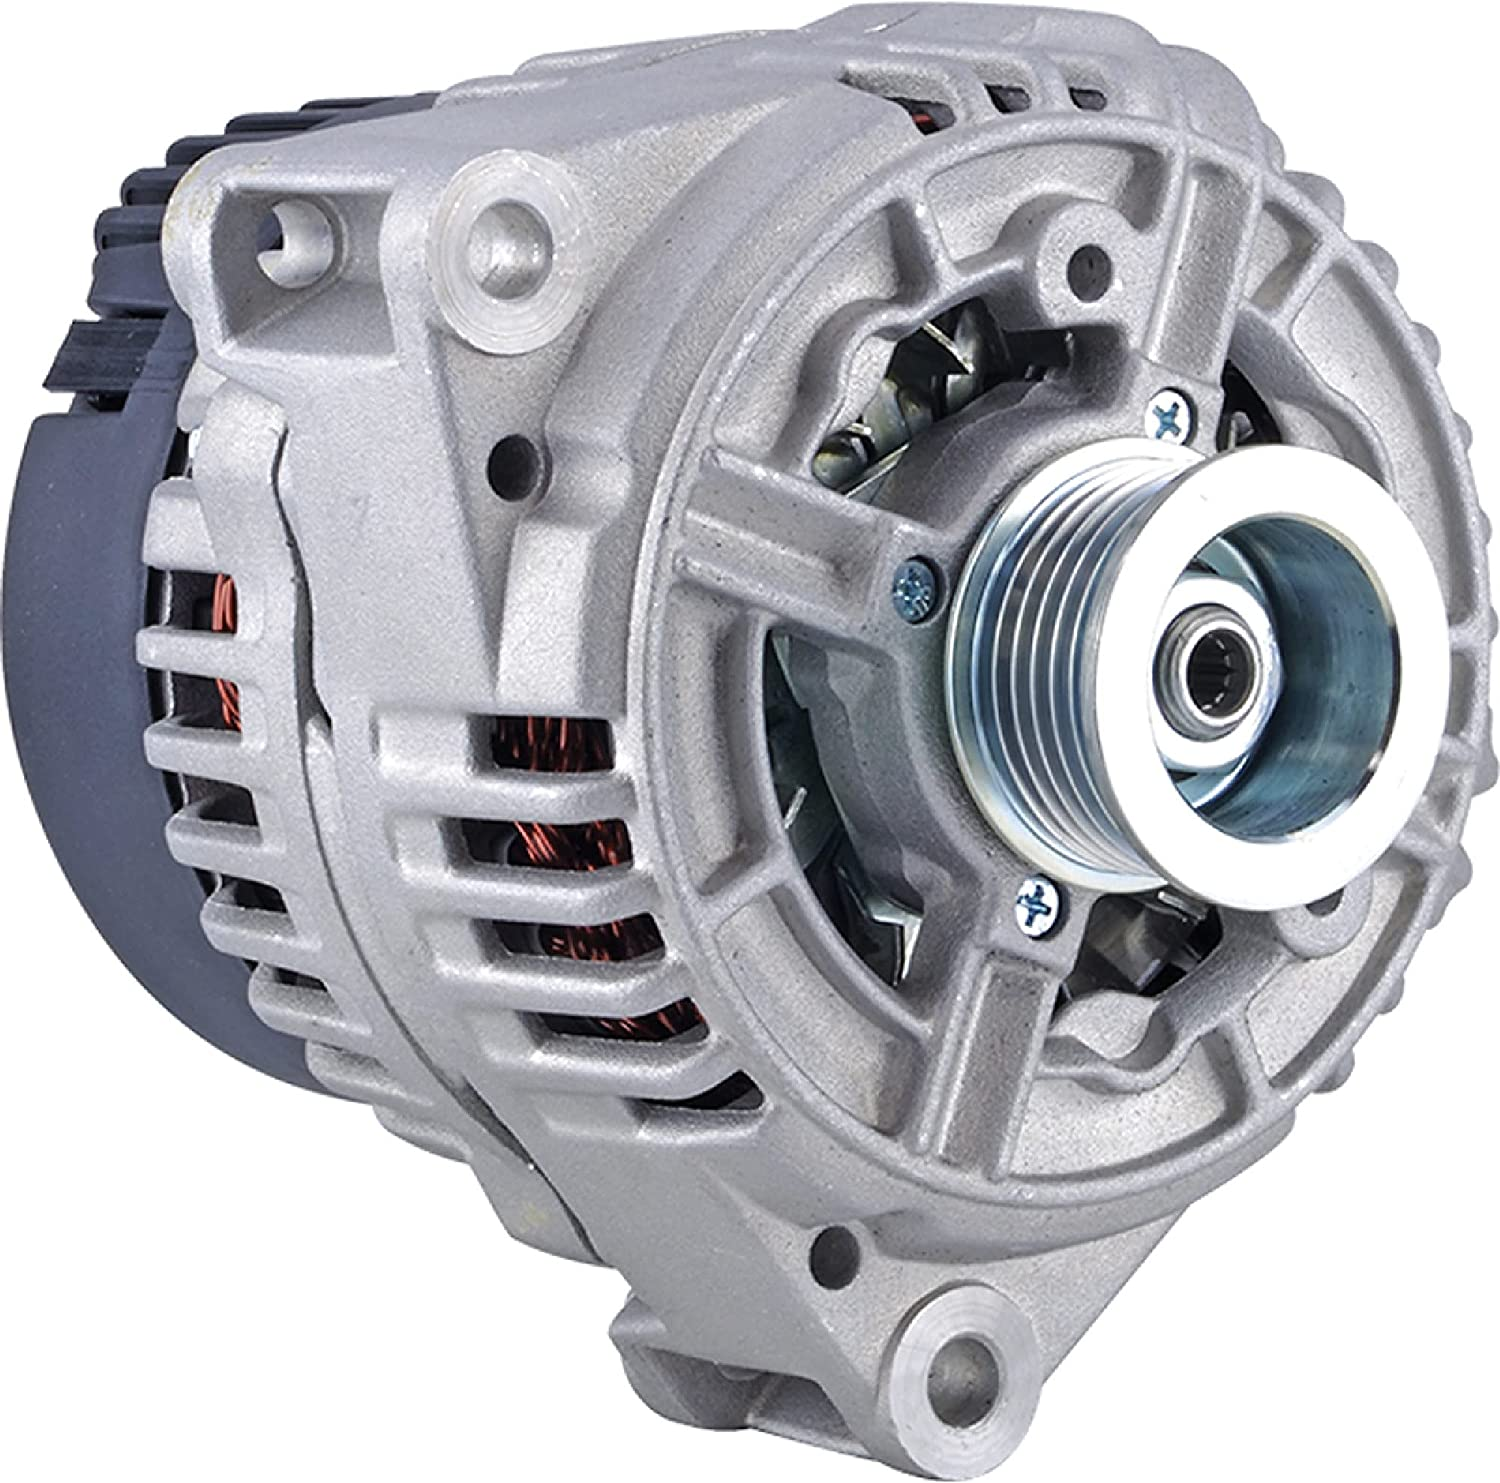 DB Electrical 400-24278 Alternator Max 70% OFF With F Compatible Replacement Spasm price